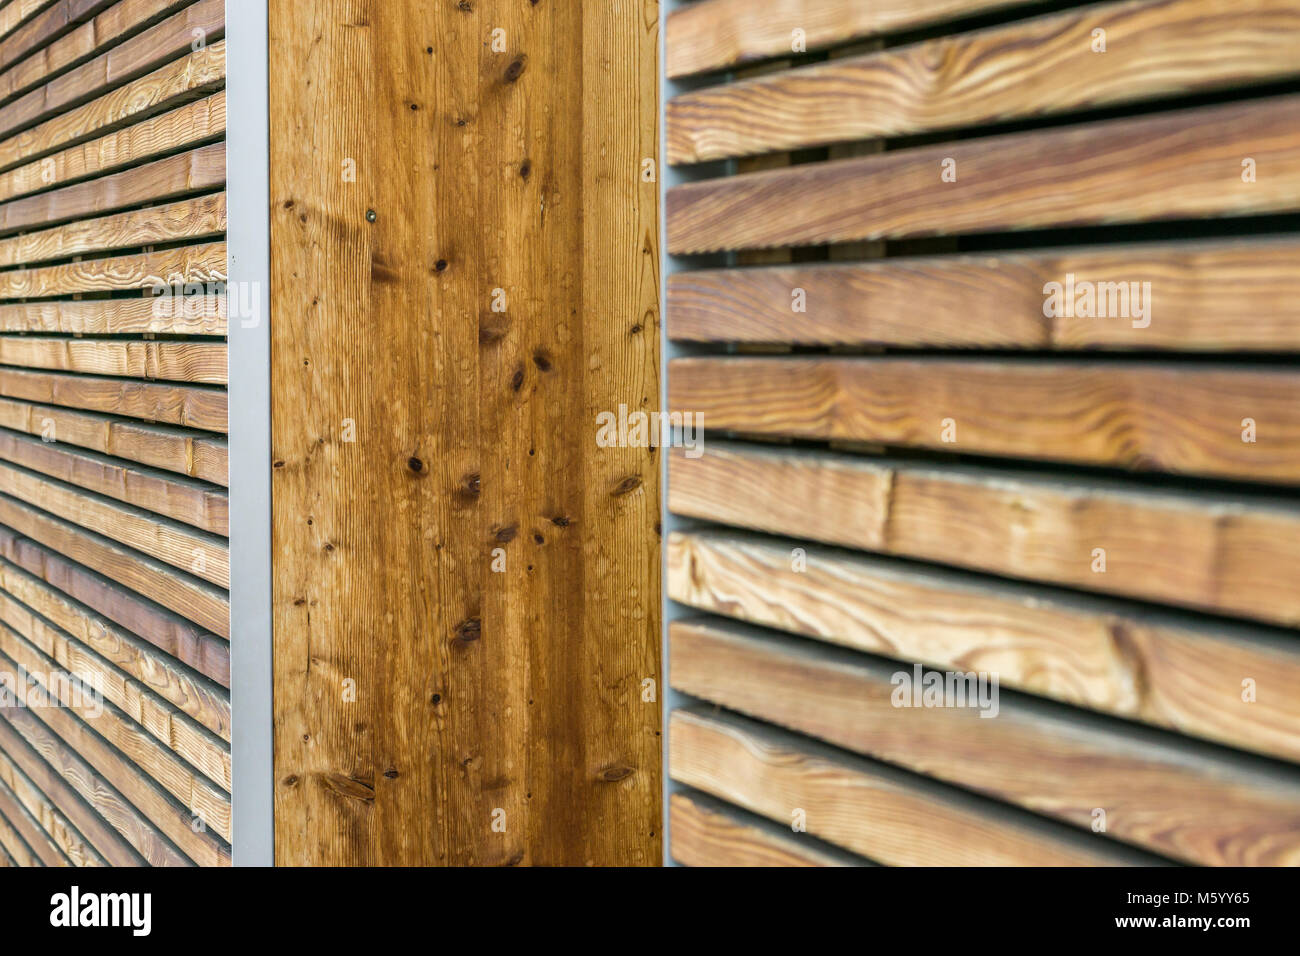 Texture of a modern wooden wall made of slats. oblique view. - Stock Image